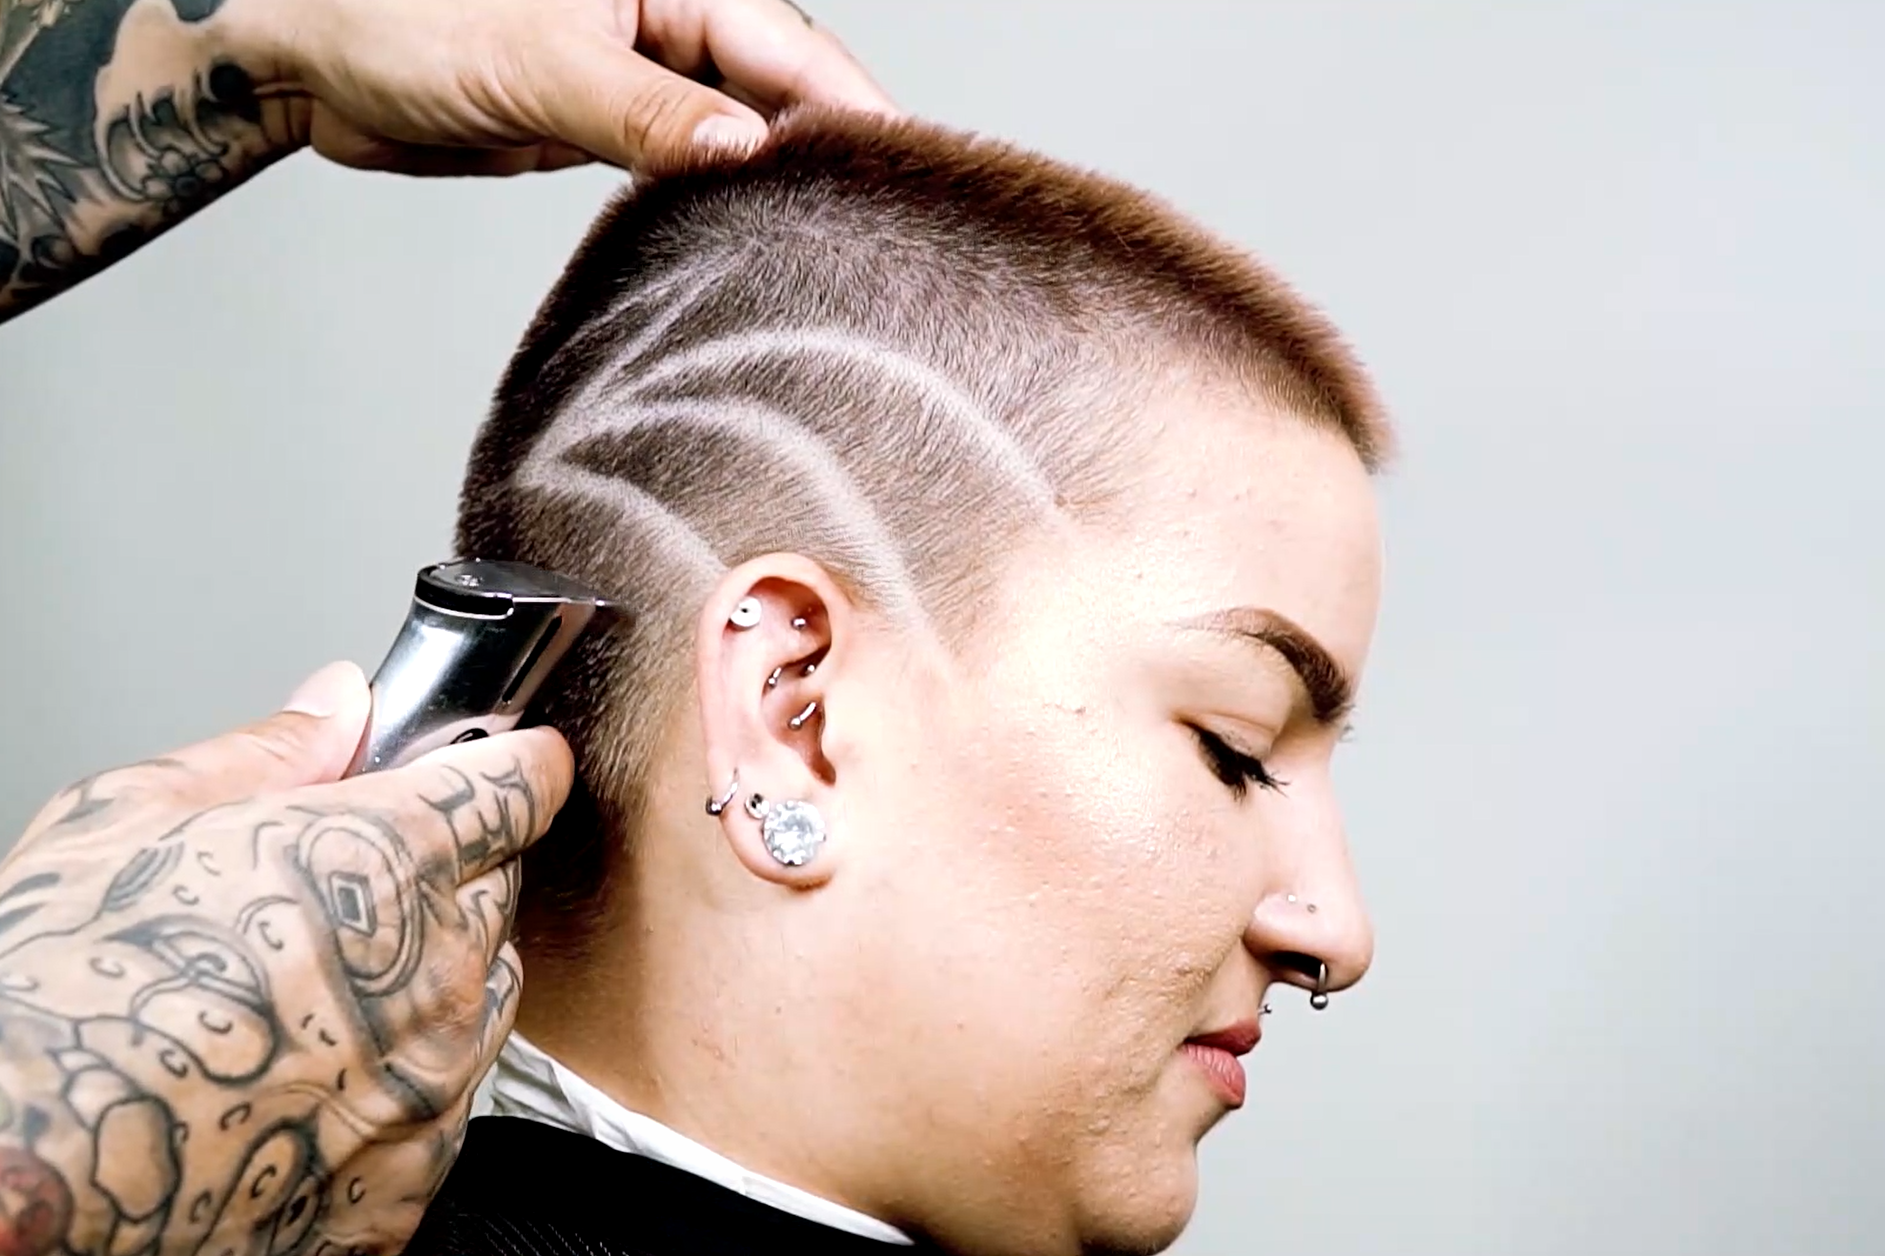 FREESTYLE DESIGN WITH BURST FADE - FEATURING KEVIN NGUYEN - WAHL ARTIST